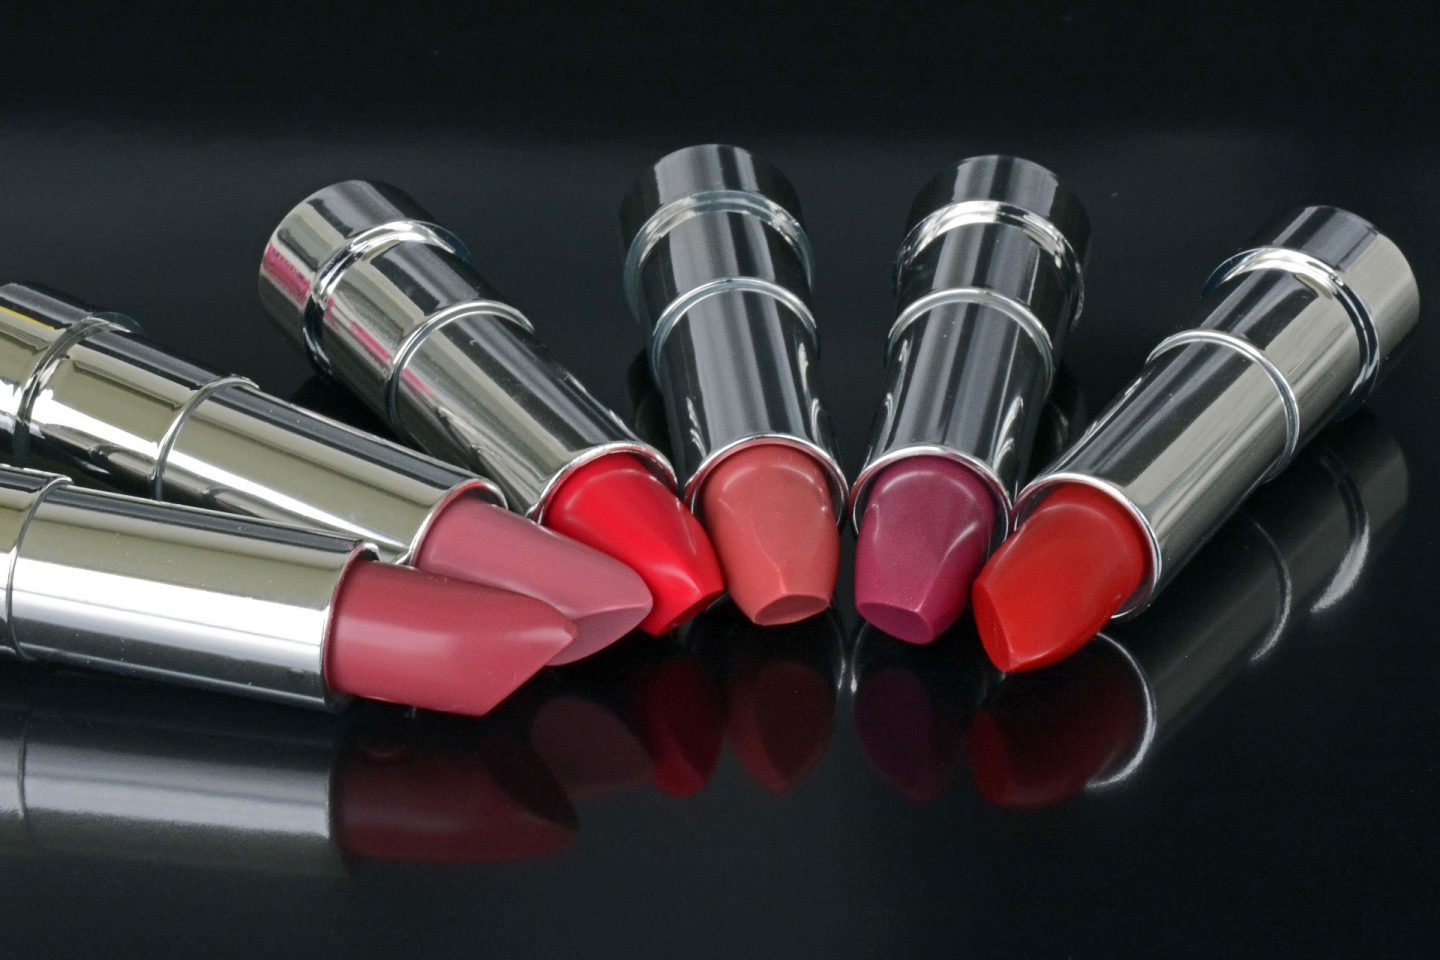 Lipstickgate! Or How to Glide Through Airport Security Like An A-Lister